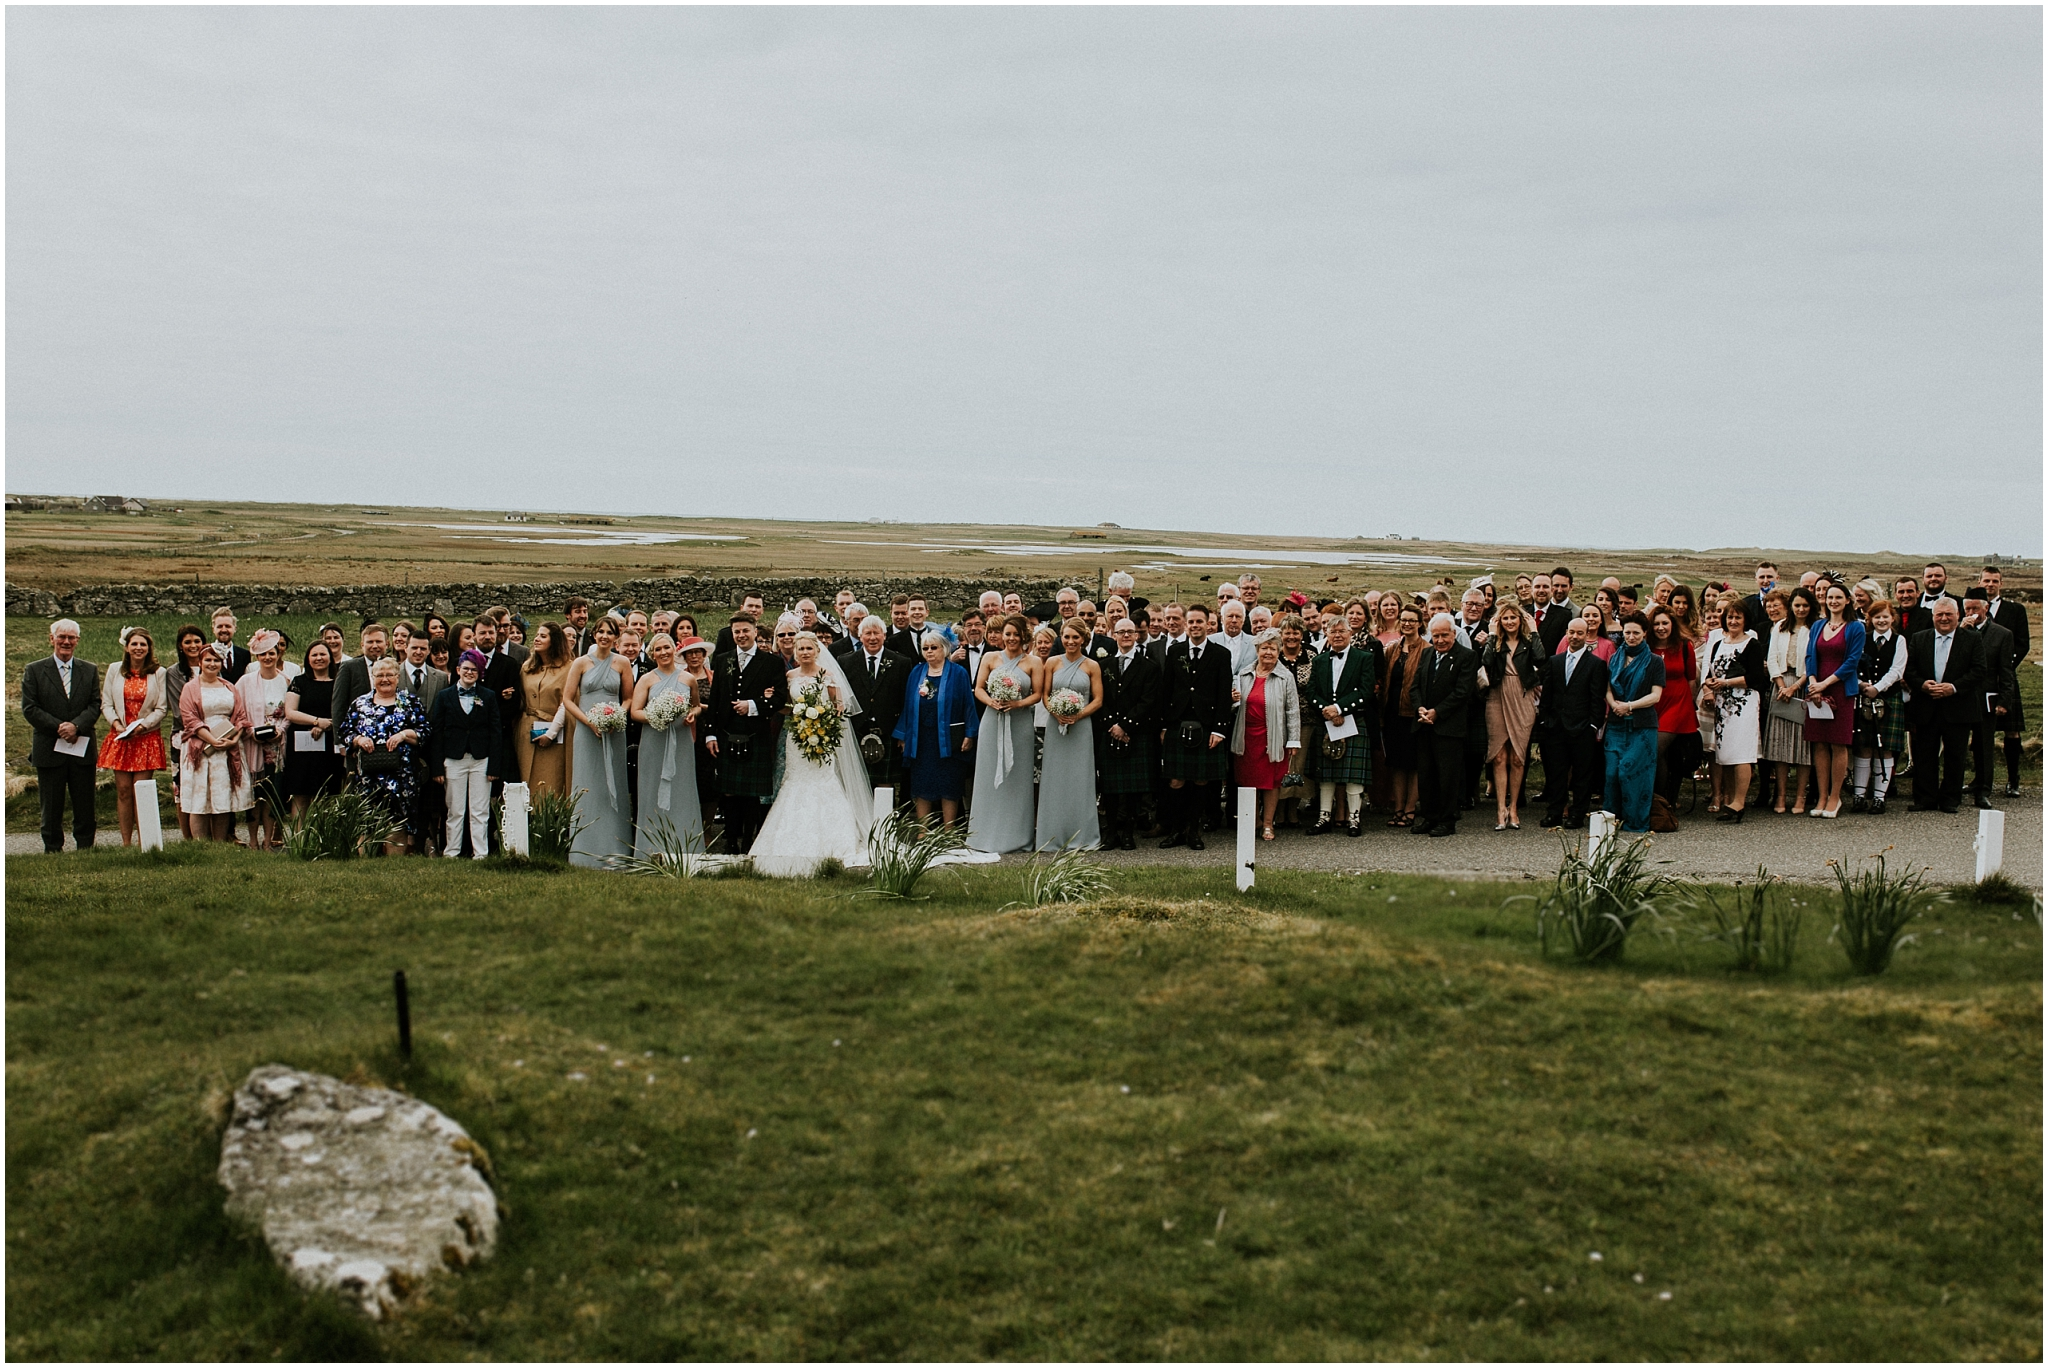 group photo of everyone attending the wedding